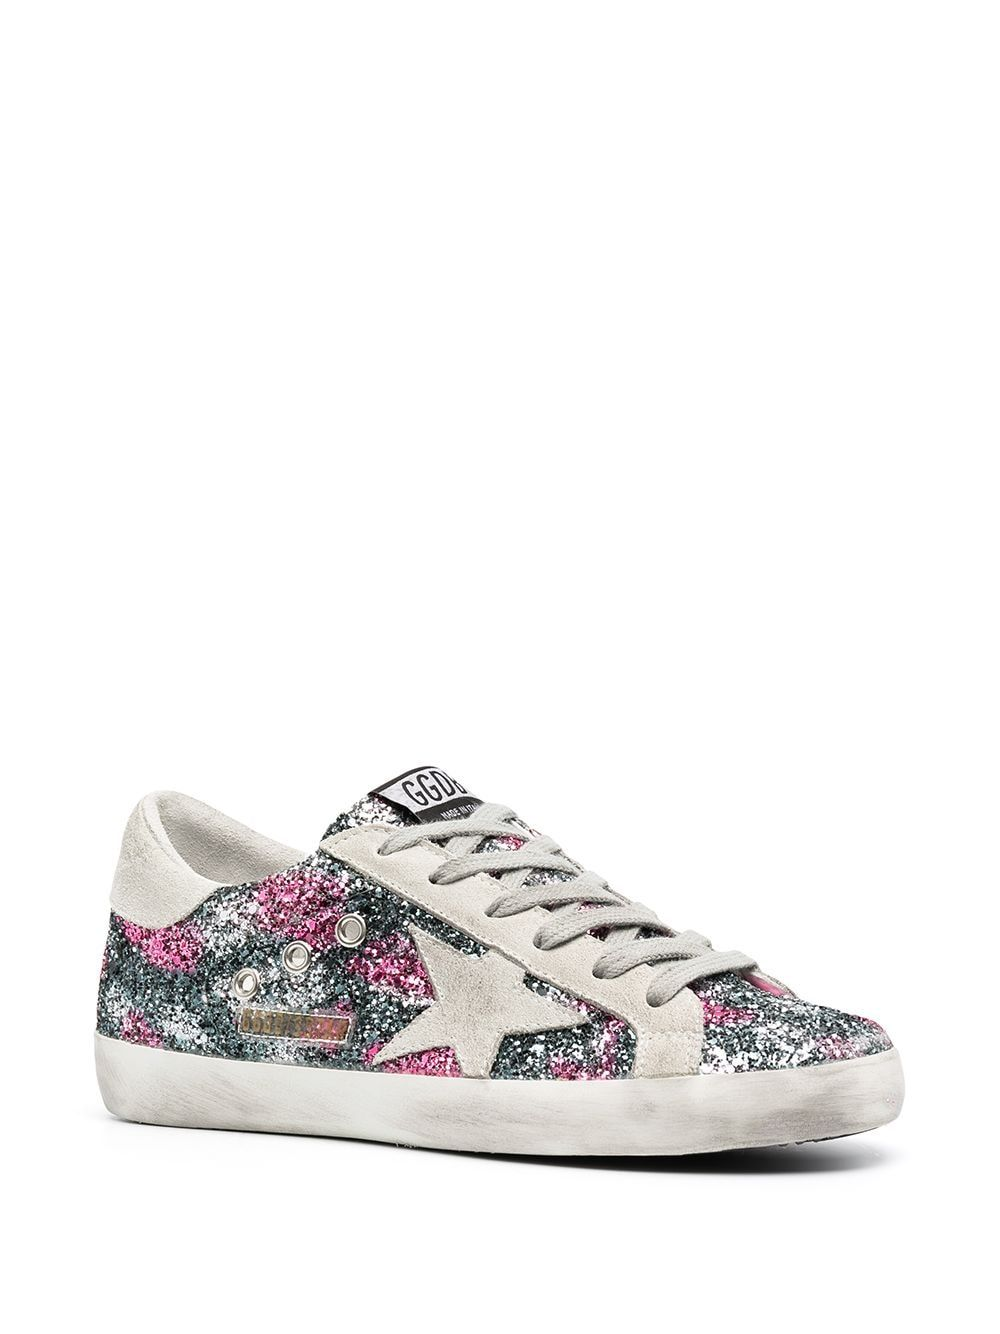 GOLDEN GOOSE Leathers GOLDEN GOOSE WOMEN'S MULTICOLOR LEATHER SNEAKERS